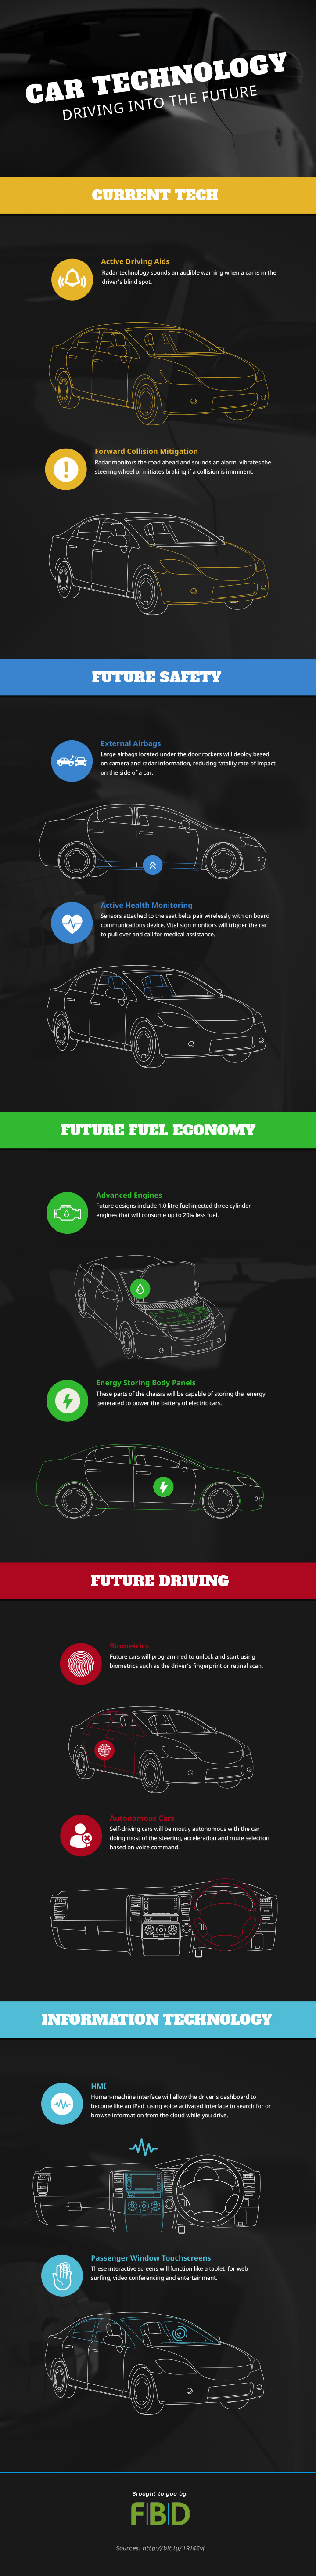 car technology infographic